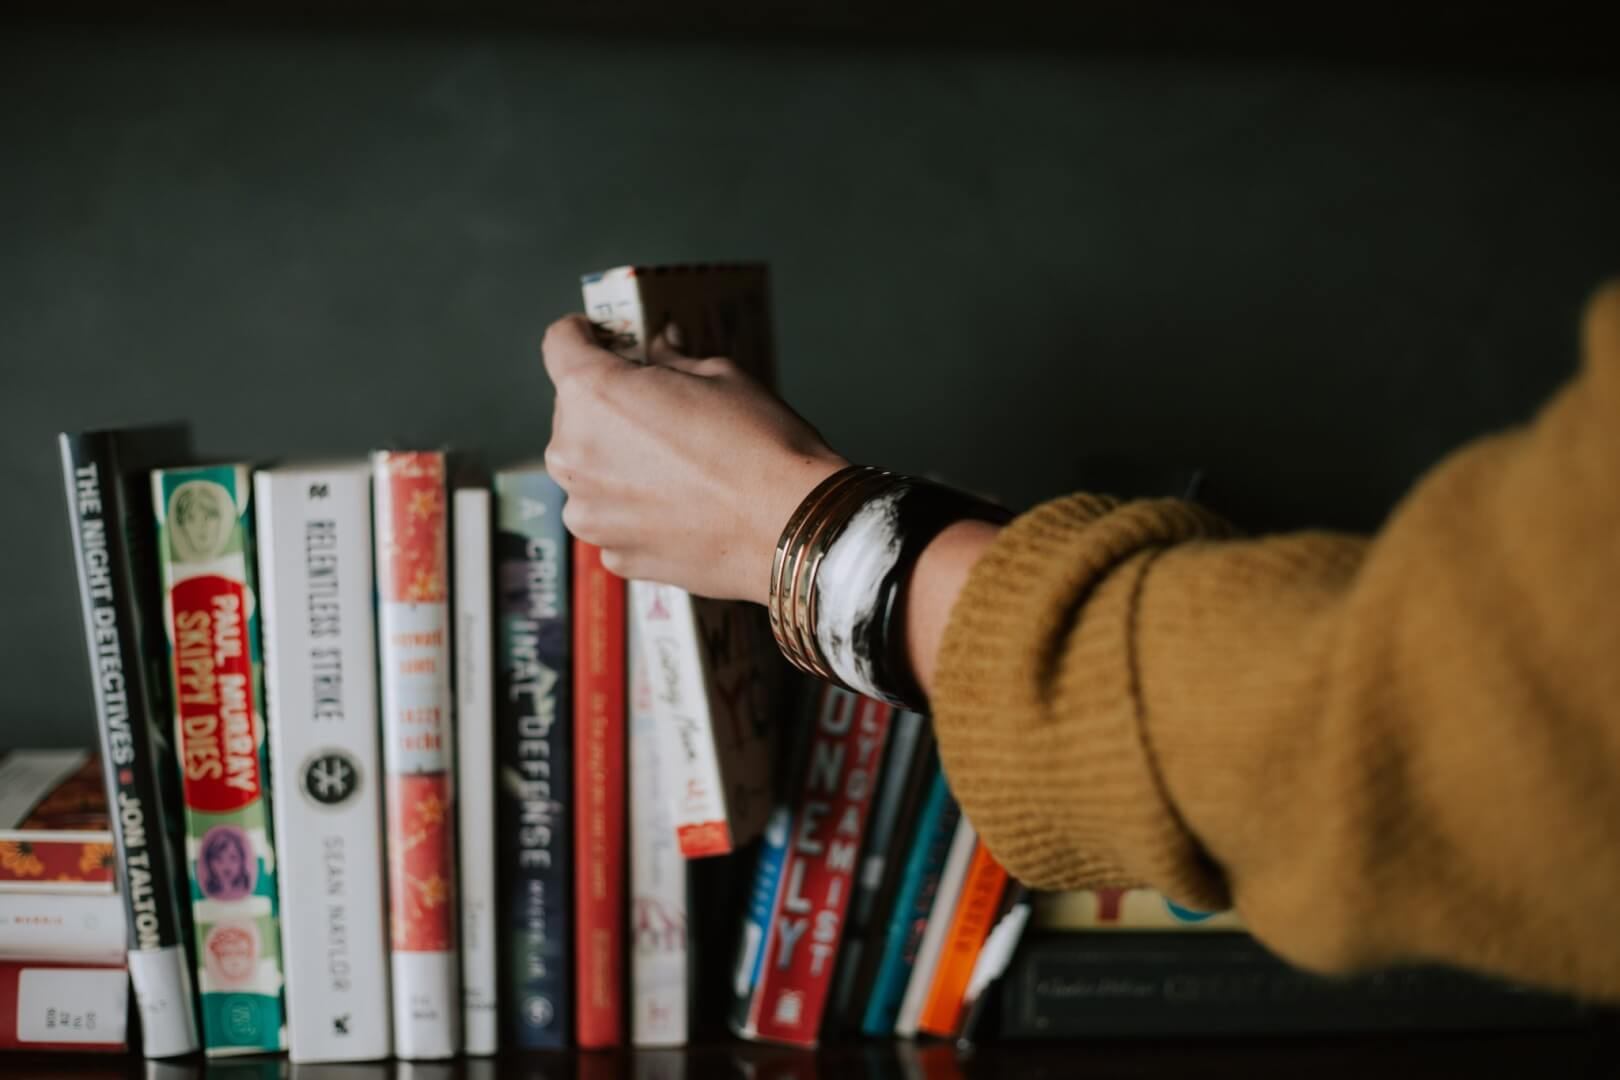 person lifting book from shelf